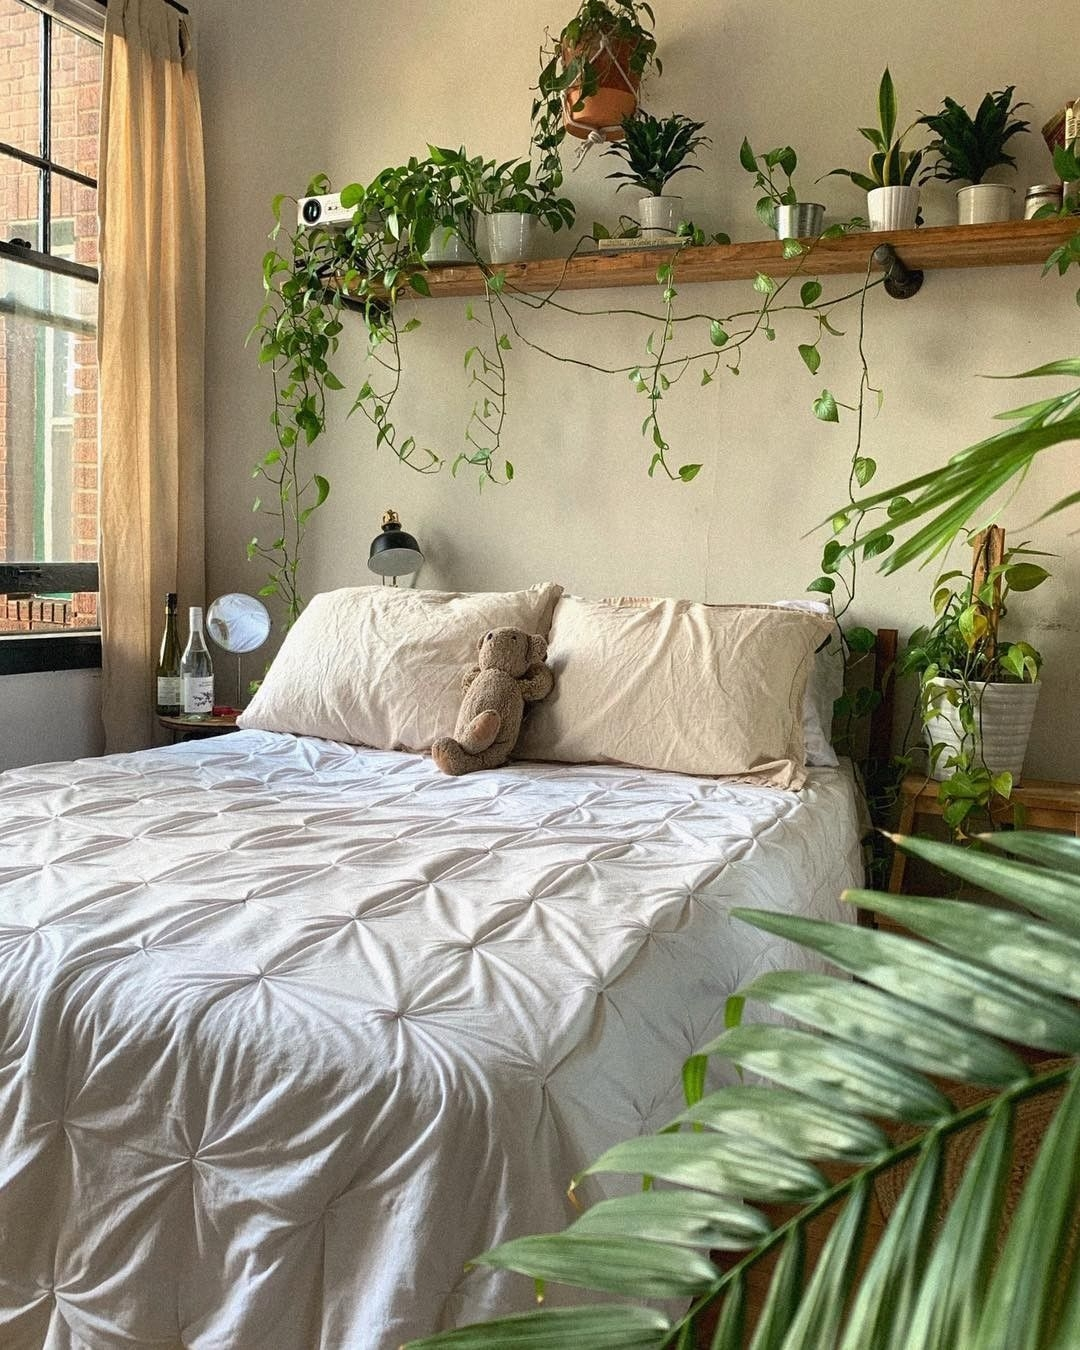 Appealing Bedroom Decor Cheap On Appealing Pin by Bilyana Dicheva On Bedroom Decor On Bedroom Decor Cheap